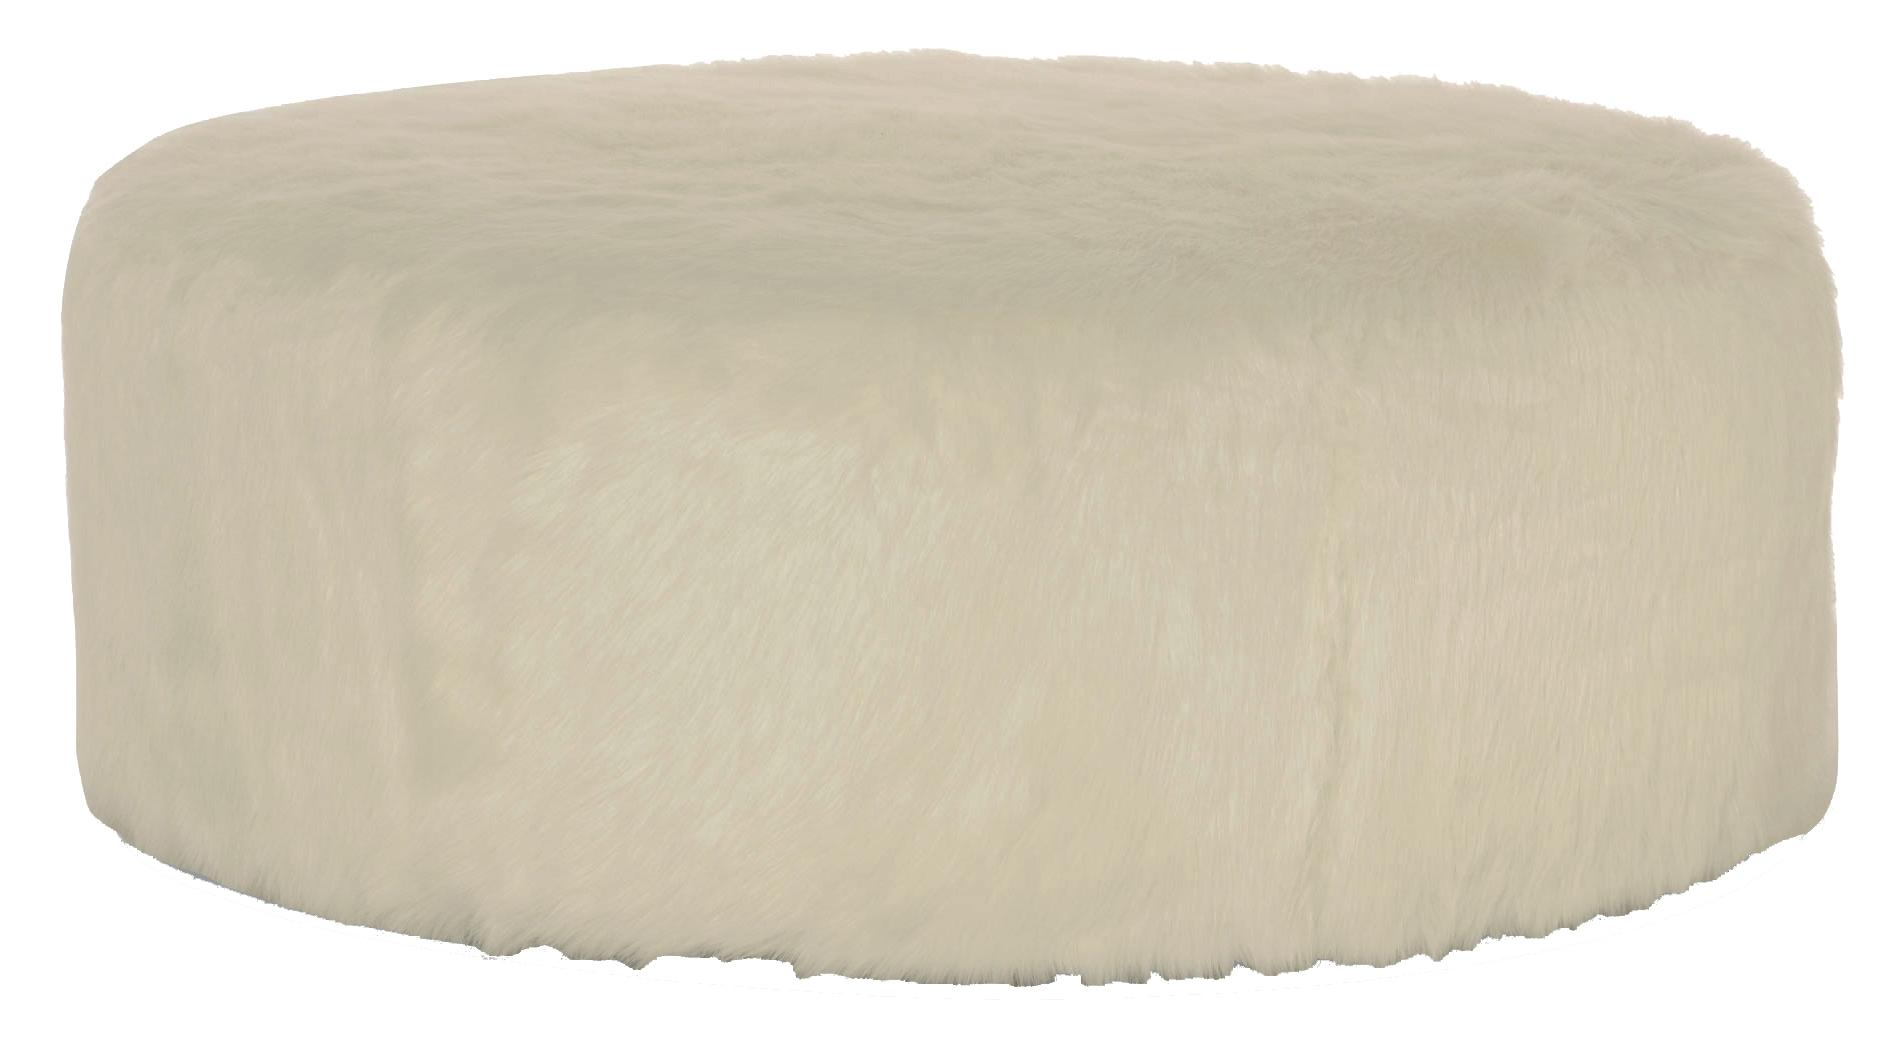 Interiors - Accents Tyre Round Ottoman by Bernhardt at Baer's Furniture